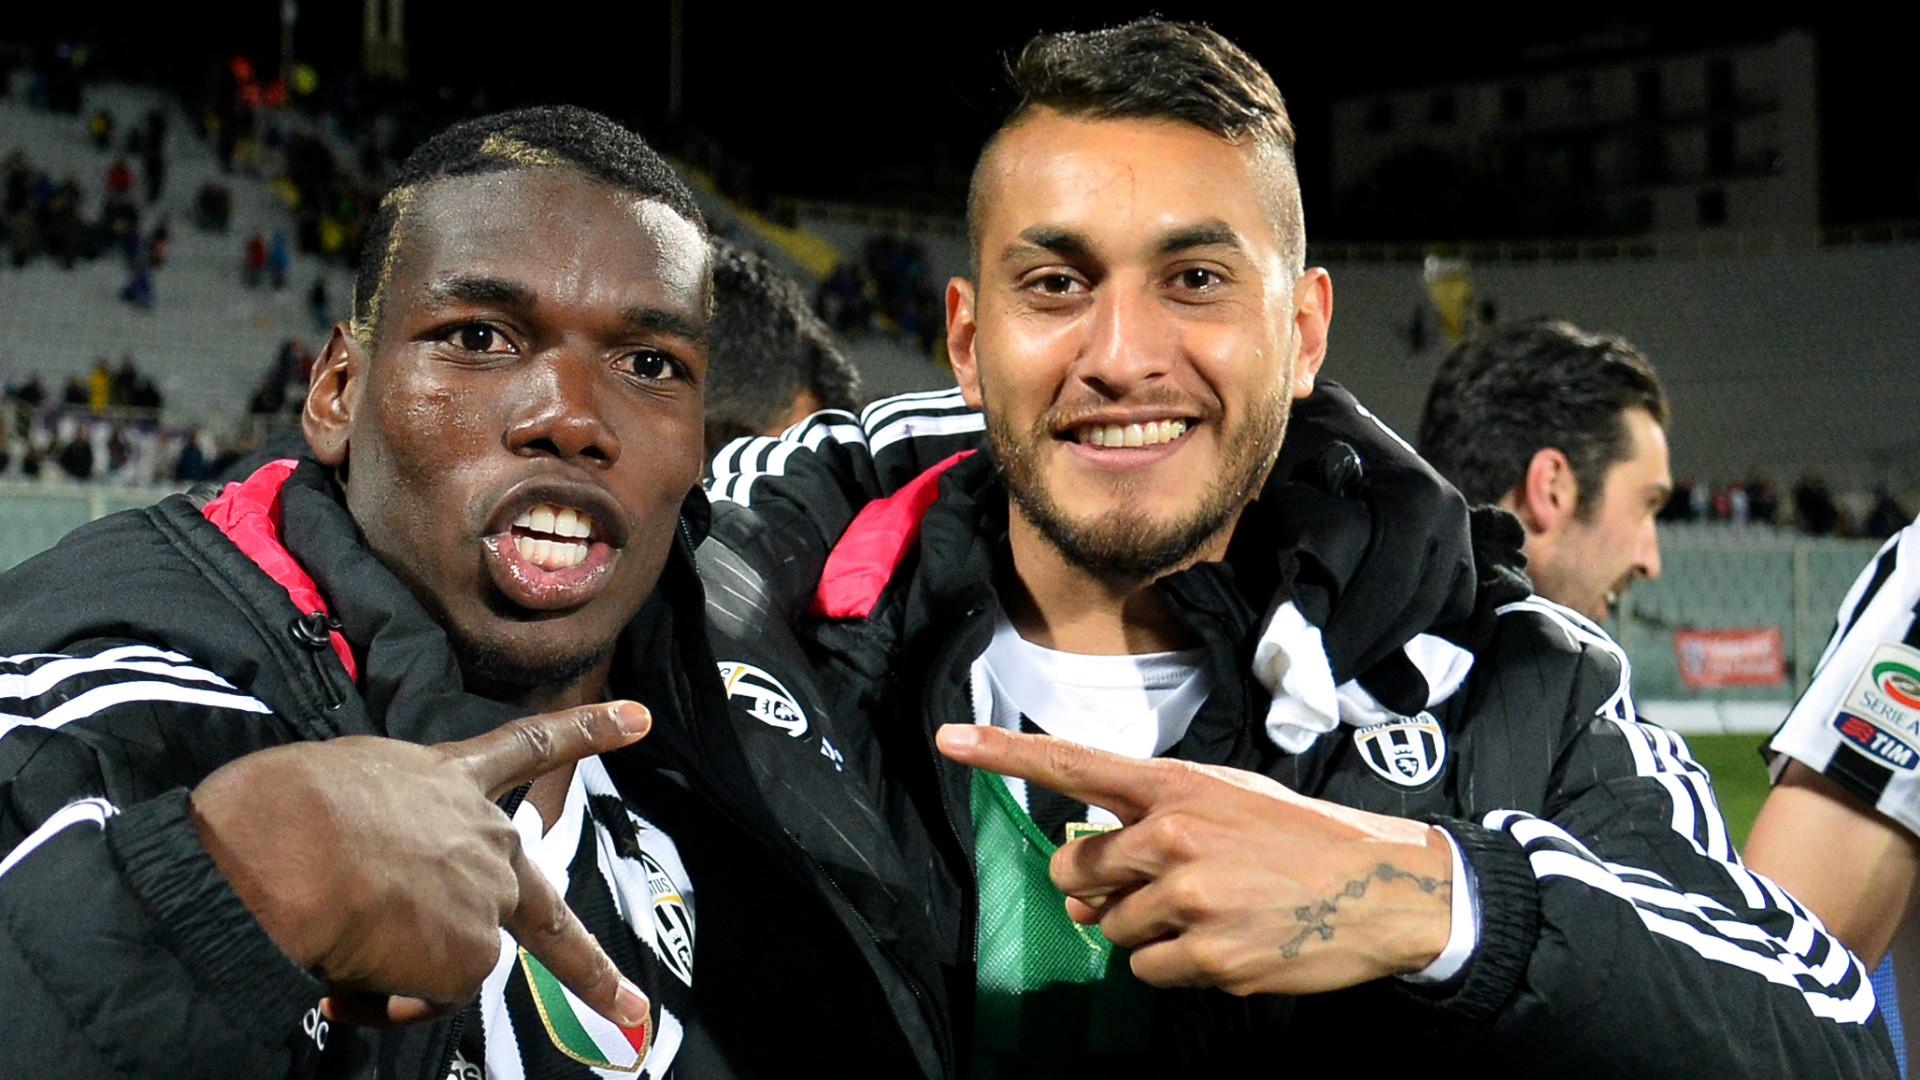 Paul Pogba and Roberto Pereyra, Juventus, 2015